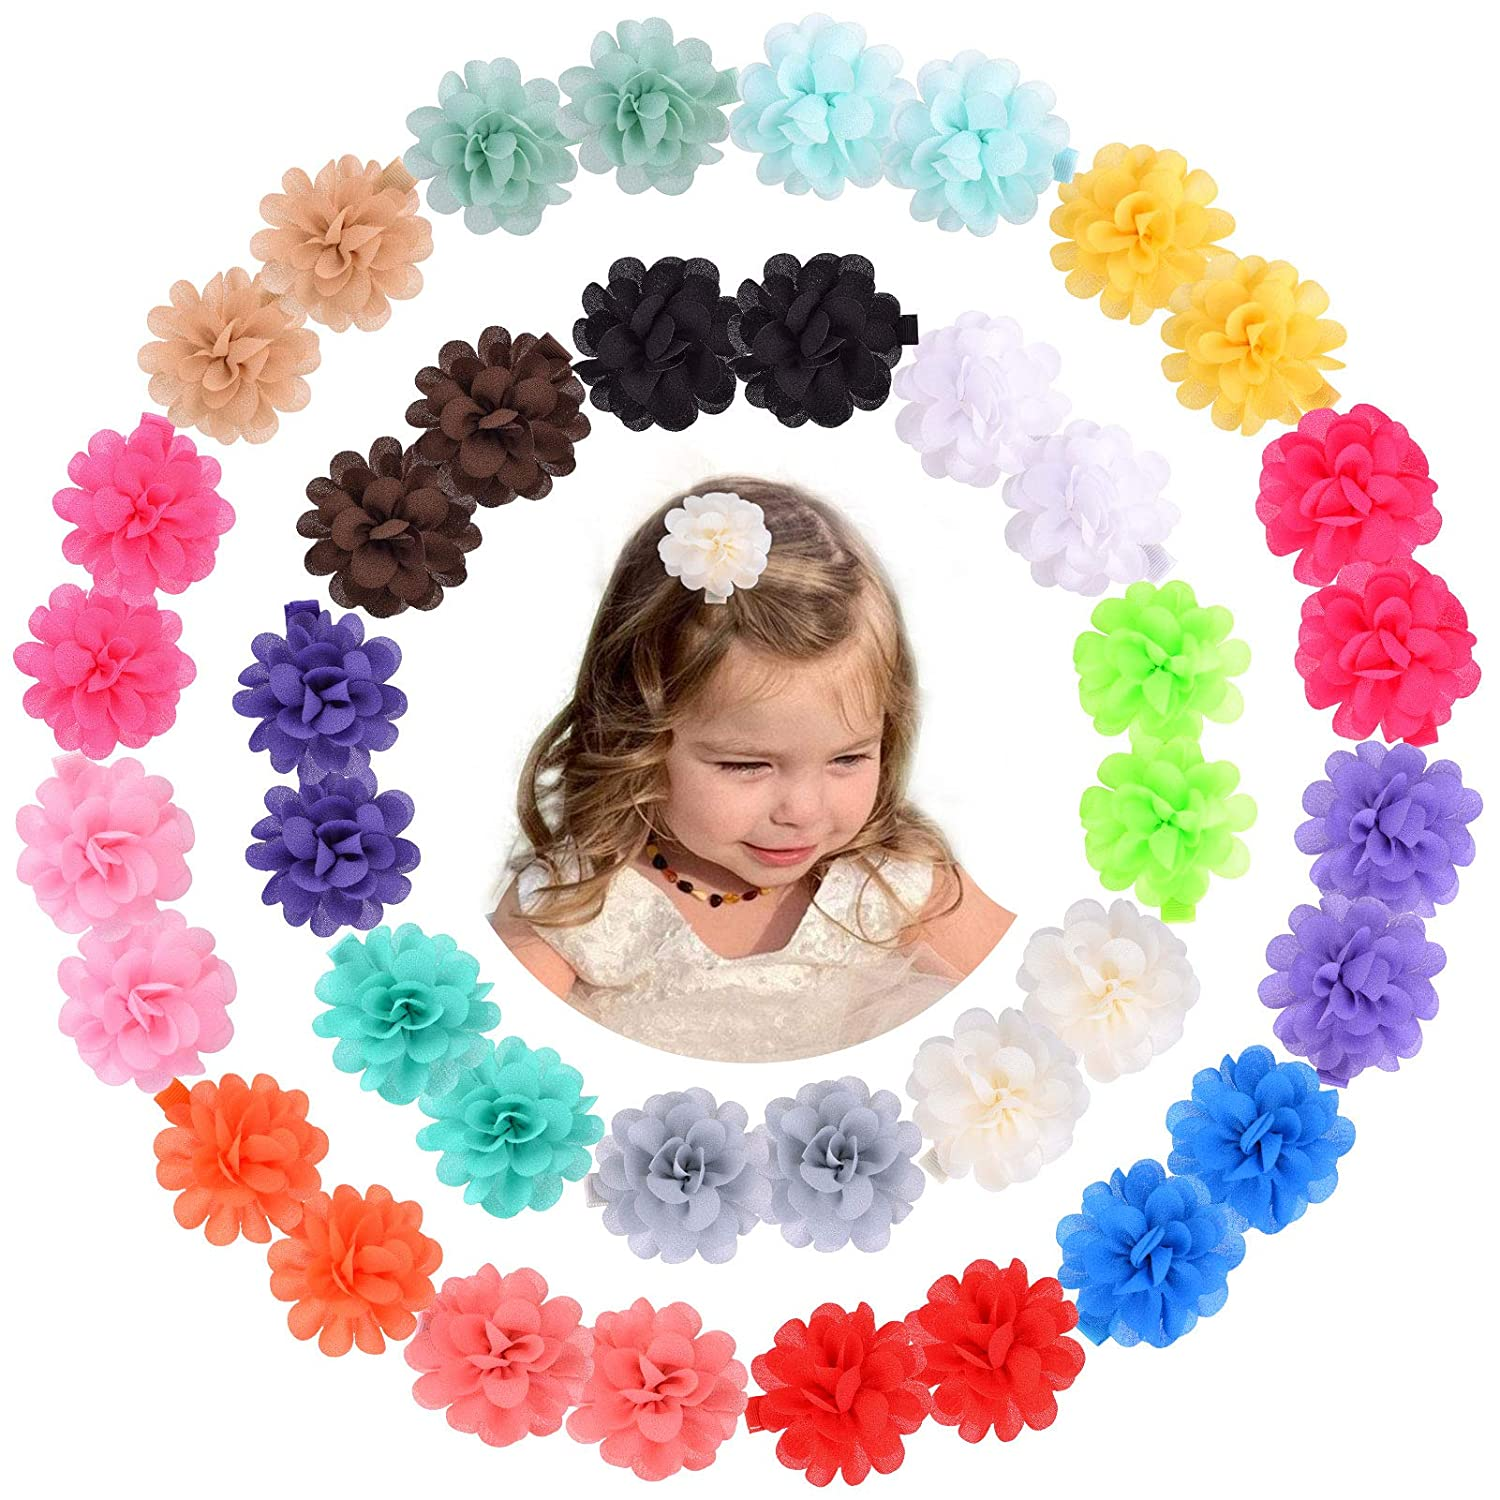 40Pcs Baby Opening large release sale Girl Hair Bow Satin Clips Floral Grosgrain Barrettes Japan's largest assortment